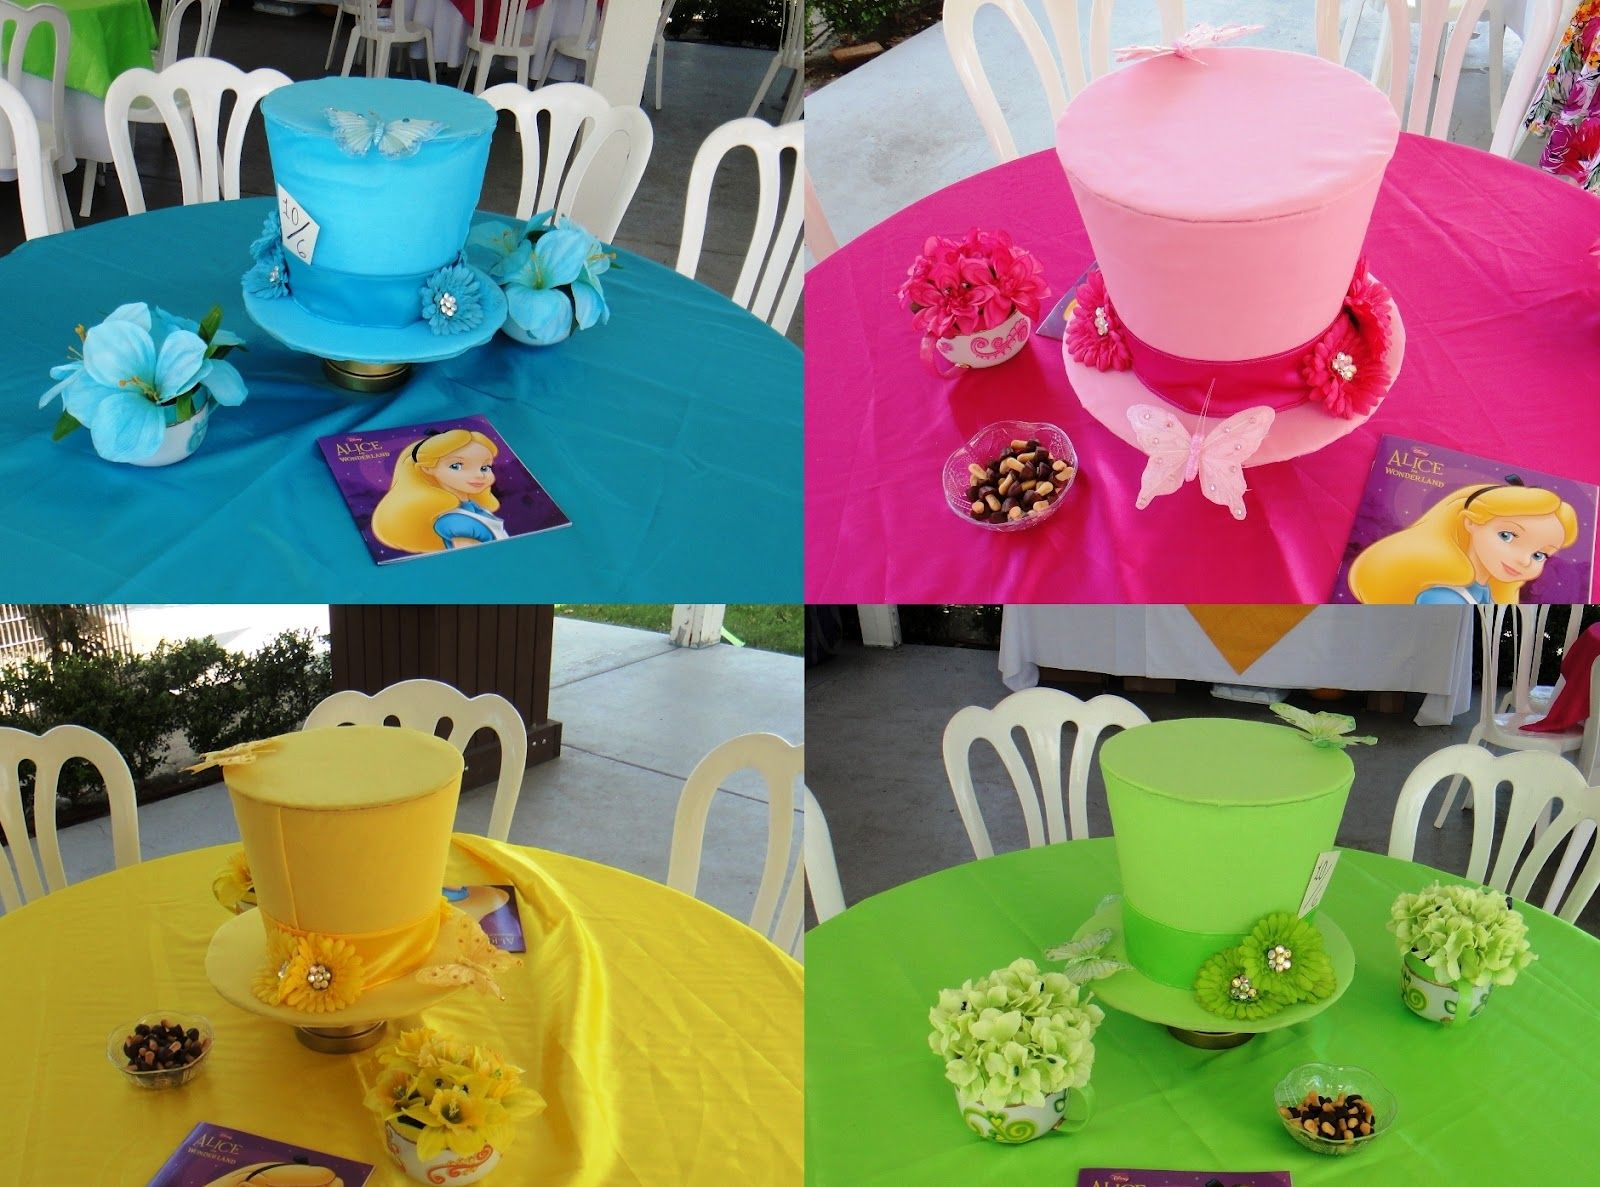 Mad hatter tea party decoration ideas - Diy Mad Hatter Centerpieces Inspired By Dis Color Crew Hat Theme Party